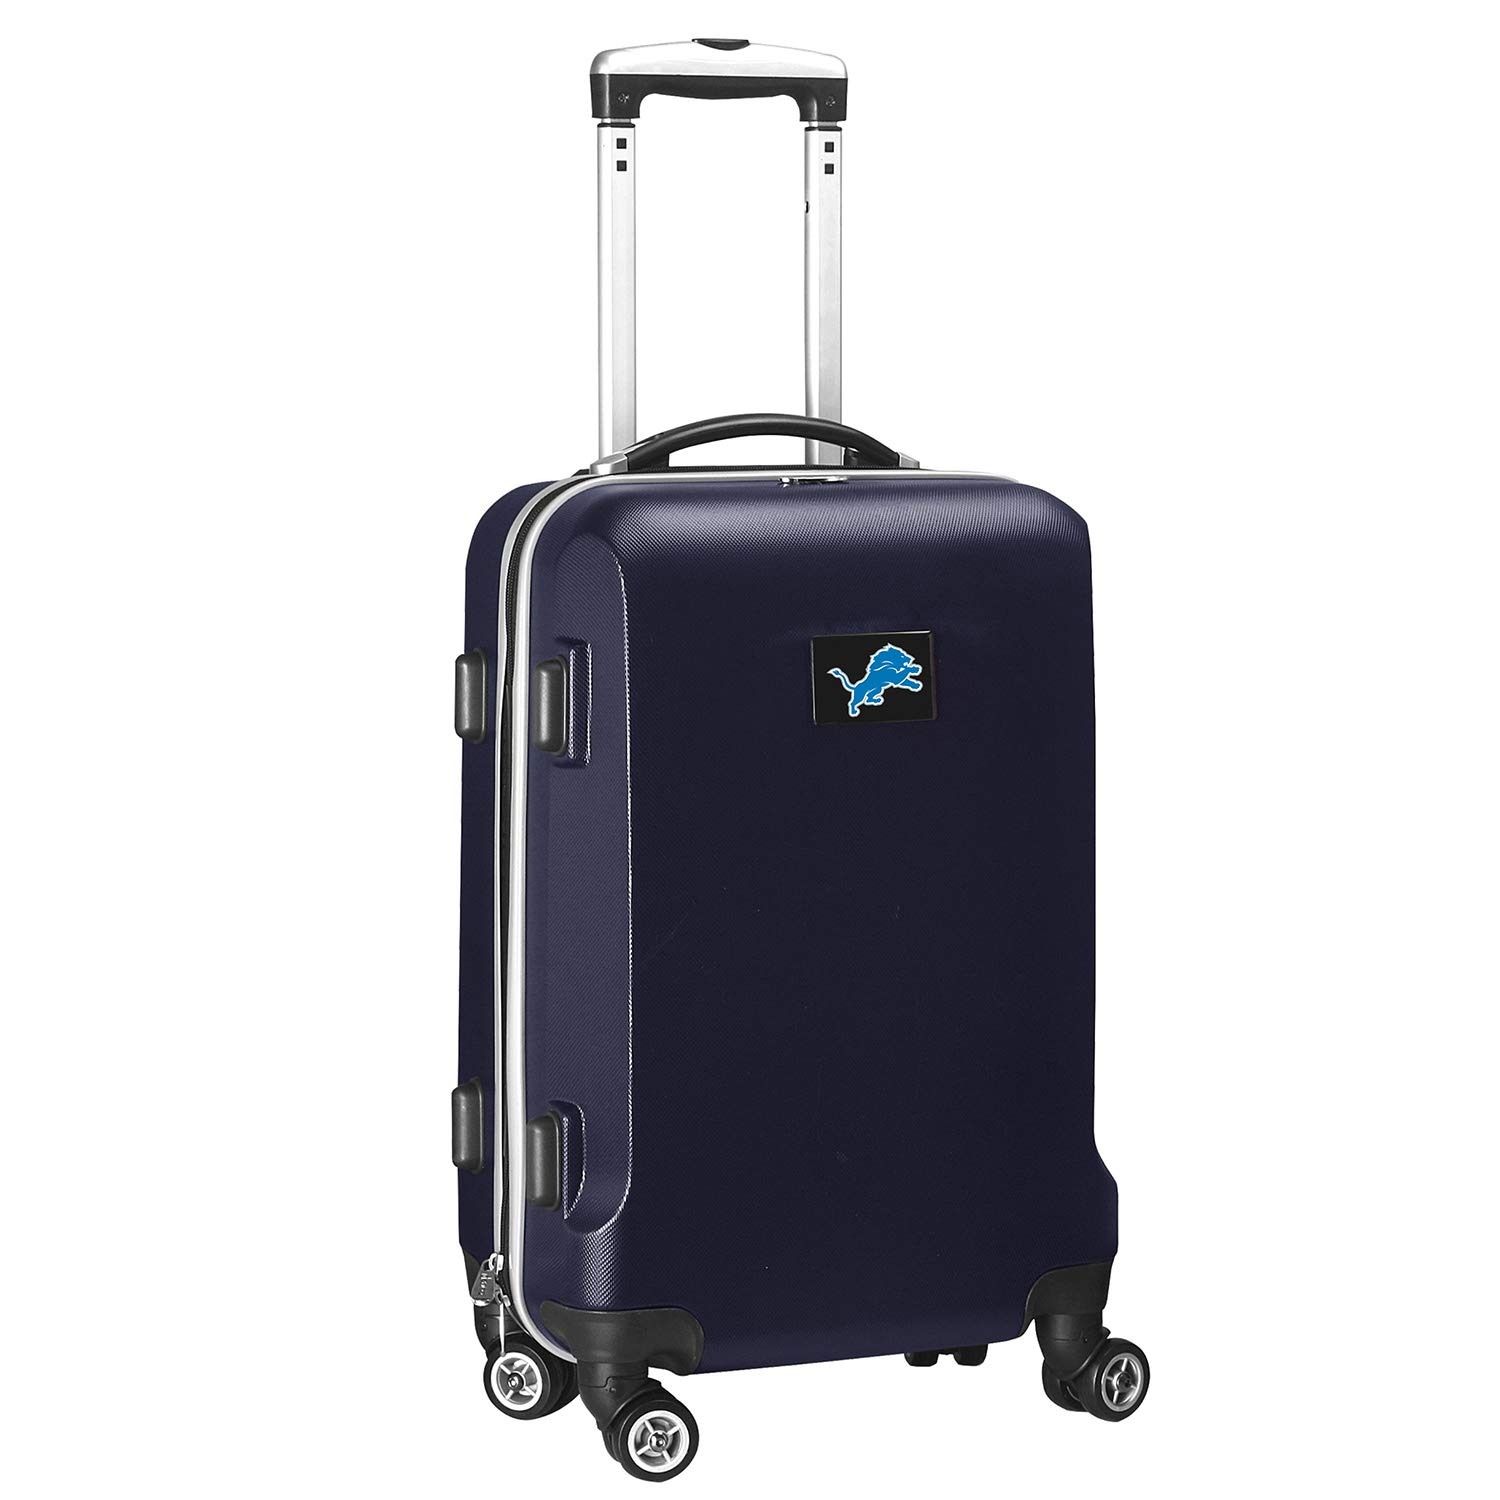 NFL Detroit Lions Carry-On Hardcase Luggage Spinner, Navy by Denco (Image #1)